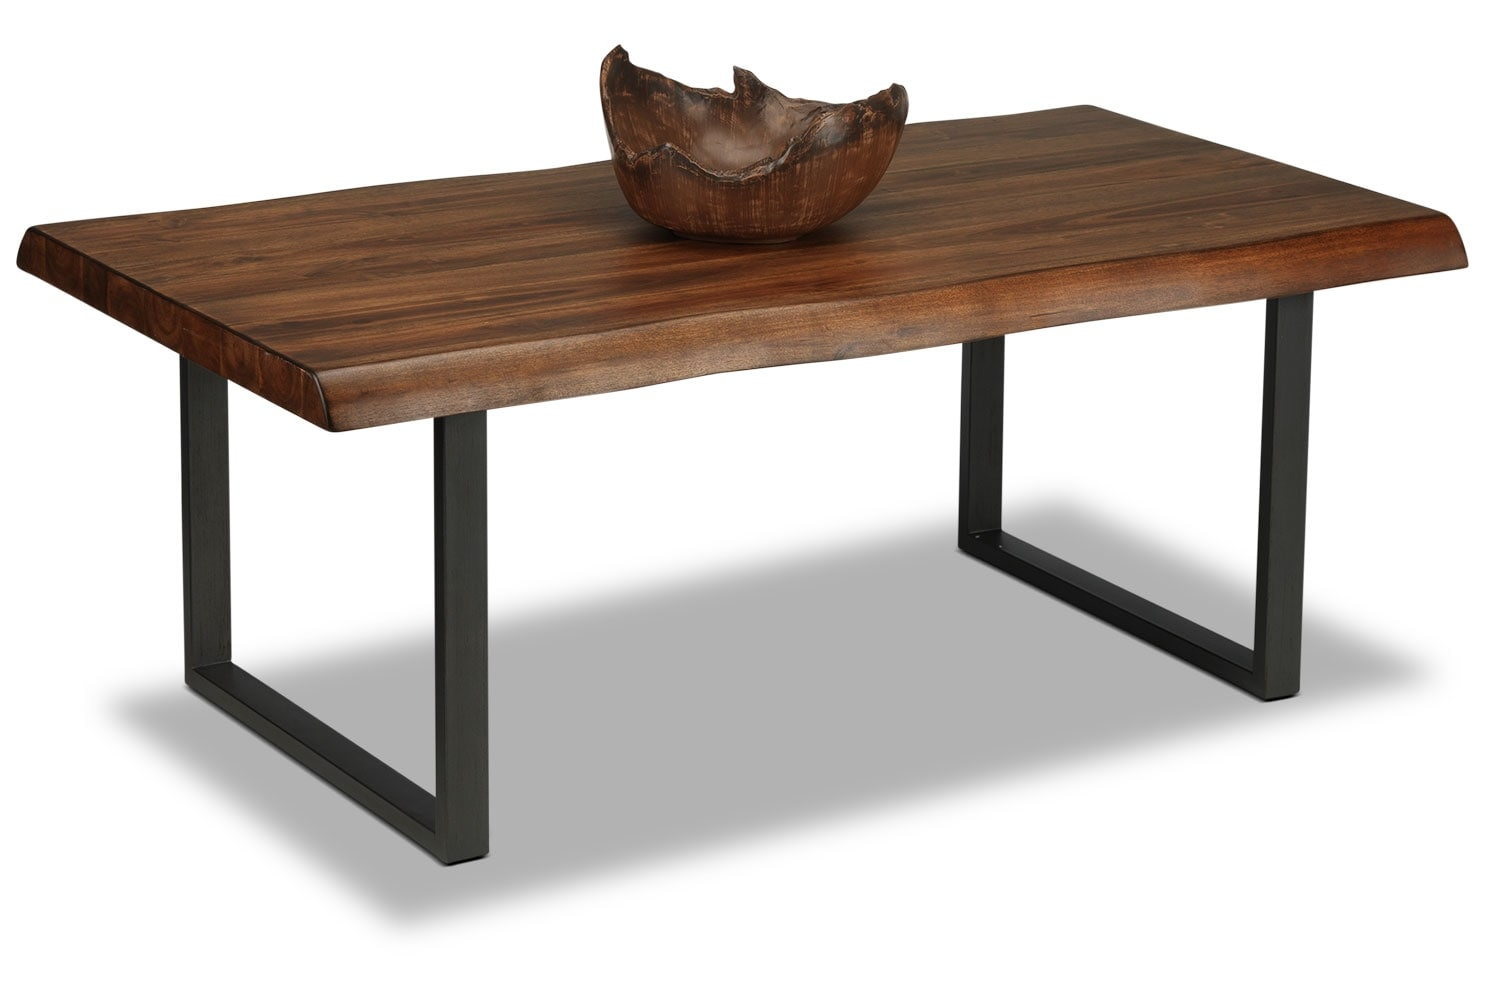 natura coffee table  walnut  leon's - hover to zoom